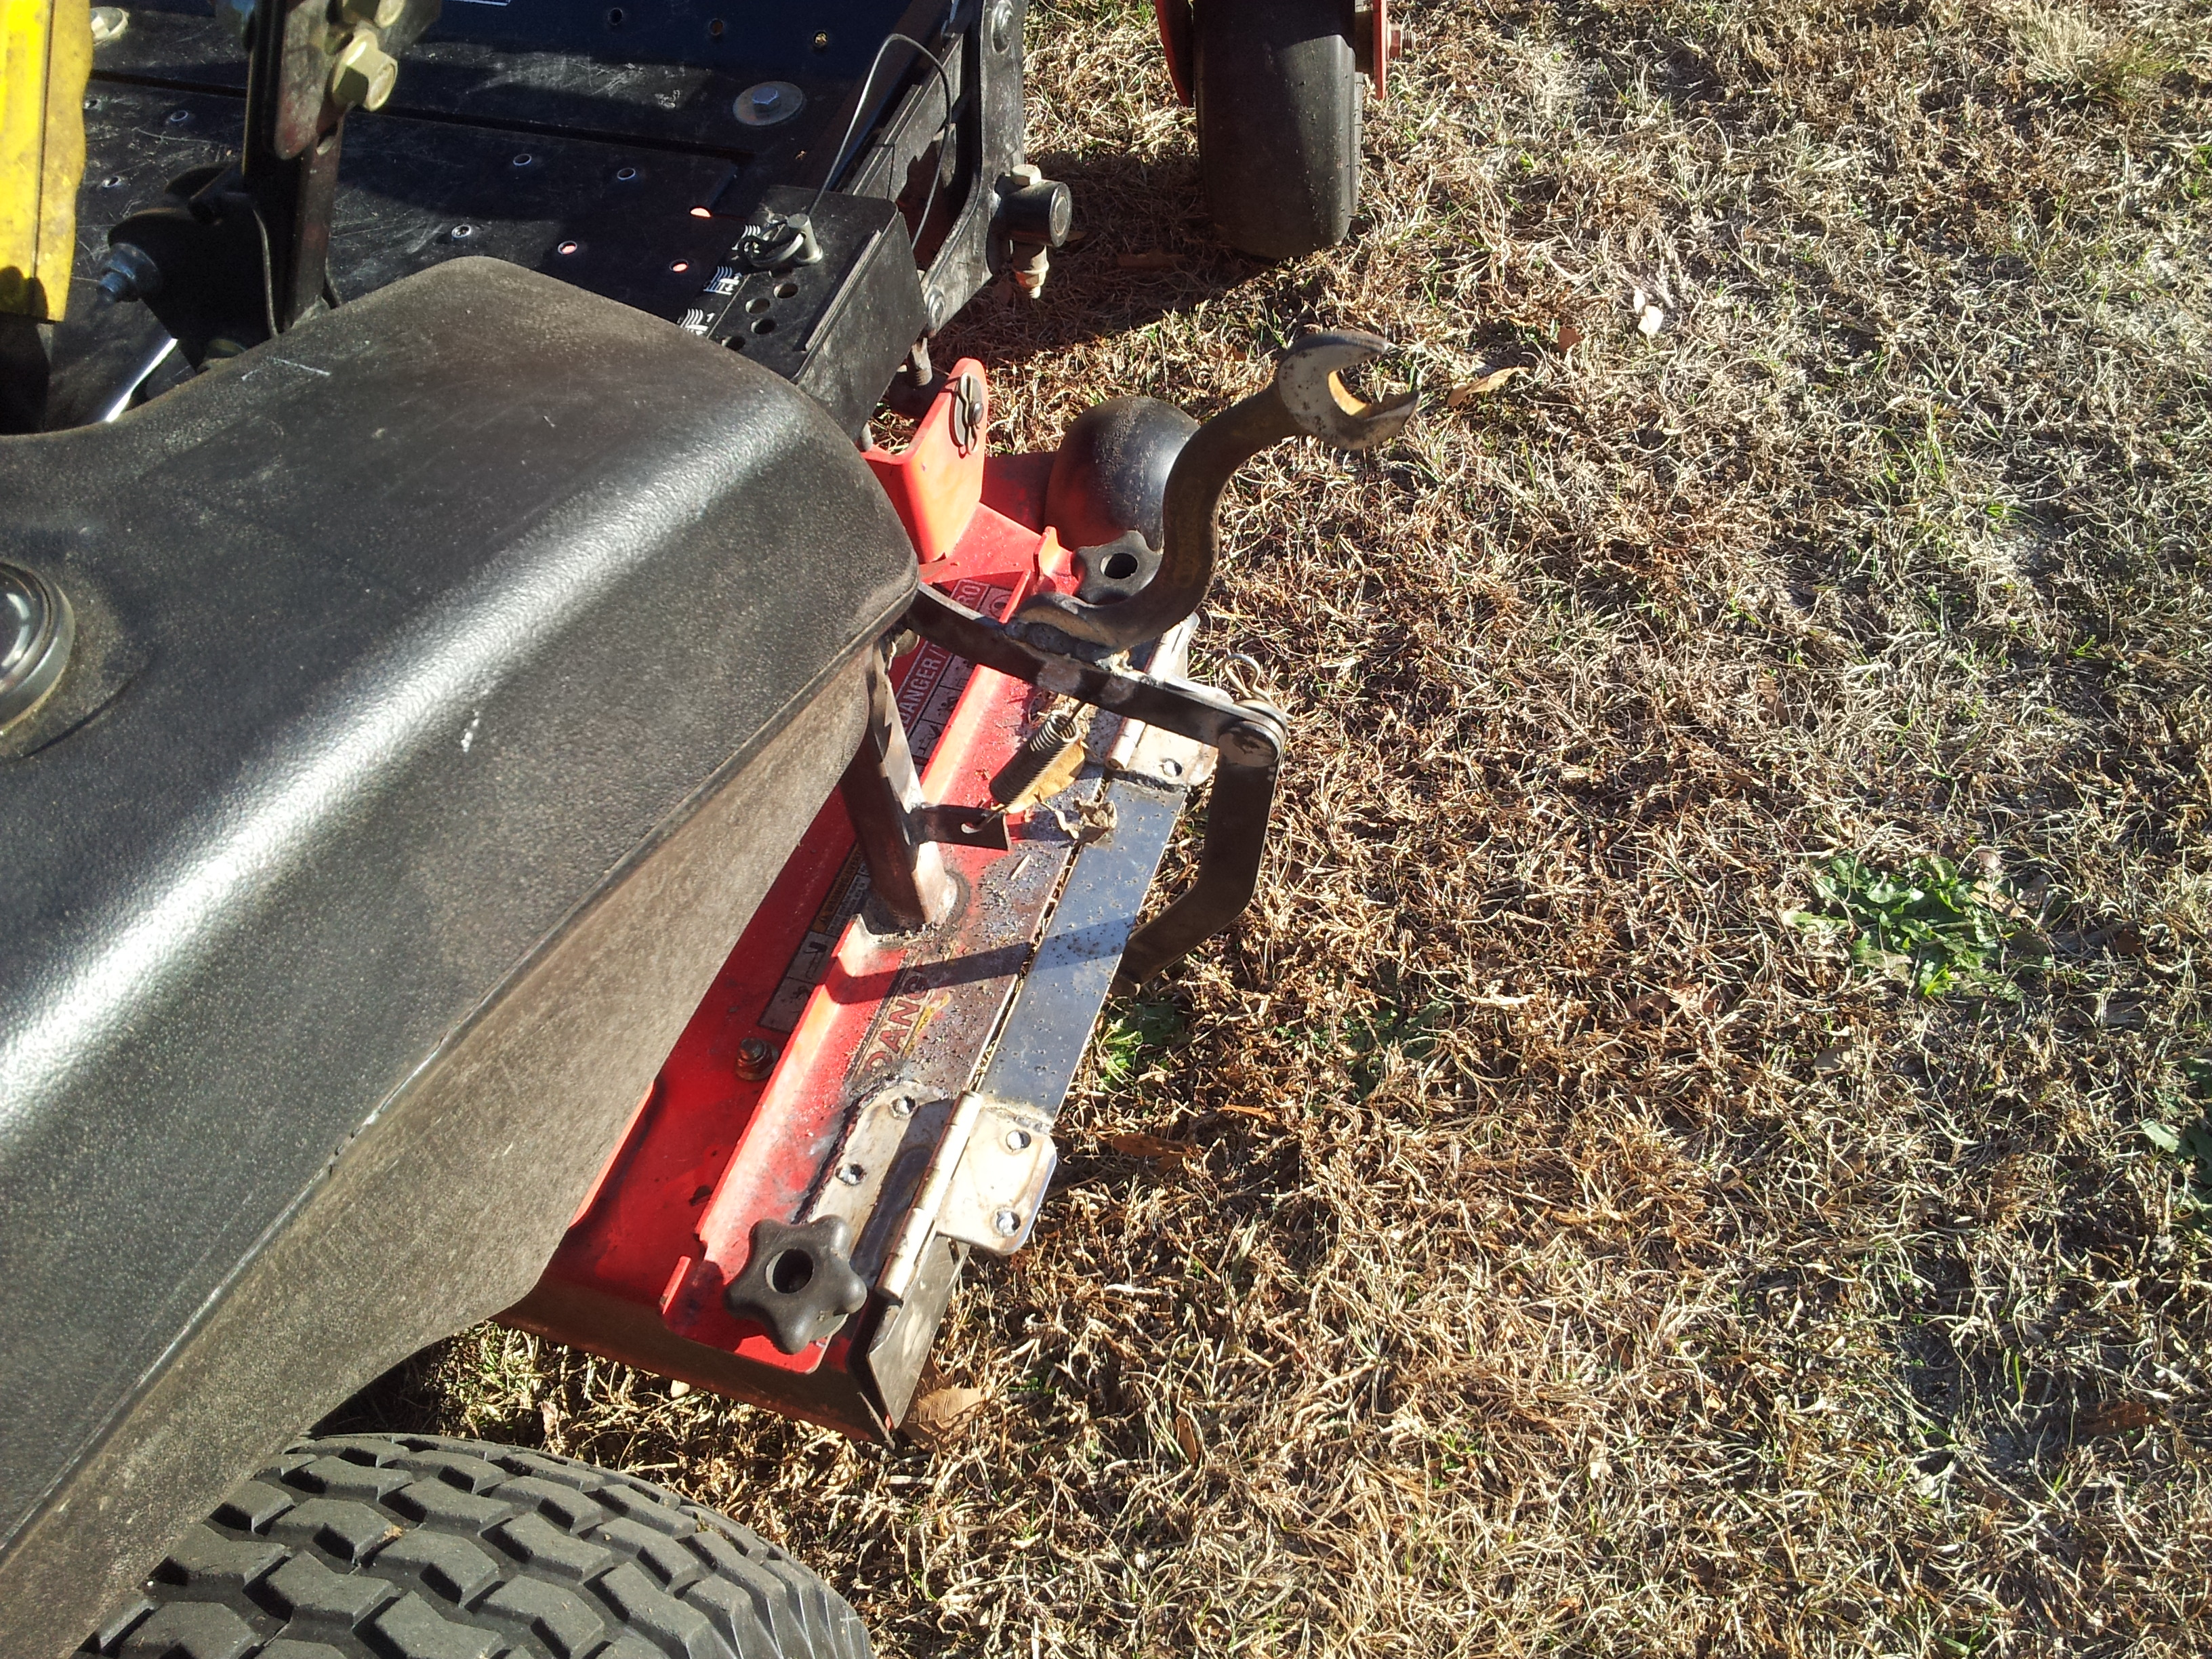 Frank's Lawn Care - Gravely 42 ZT XL, chute blocker creation